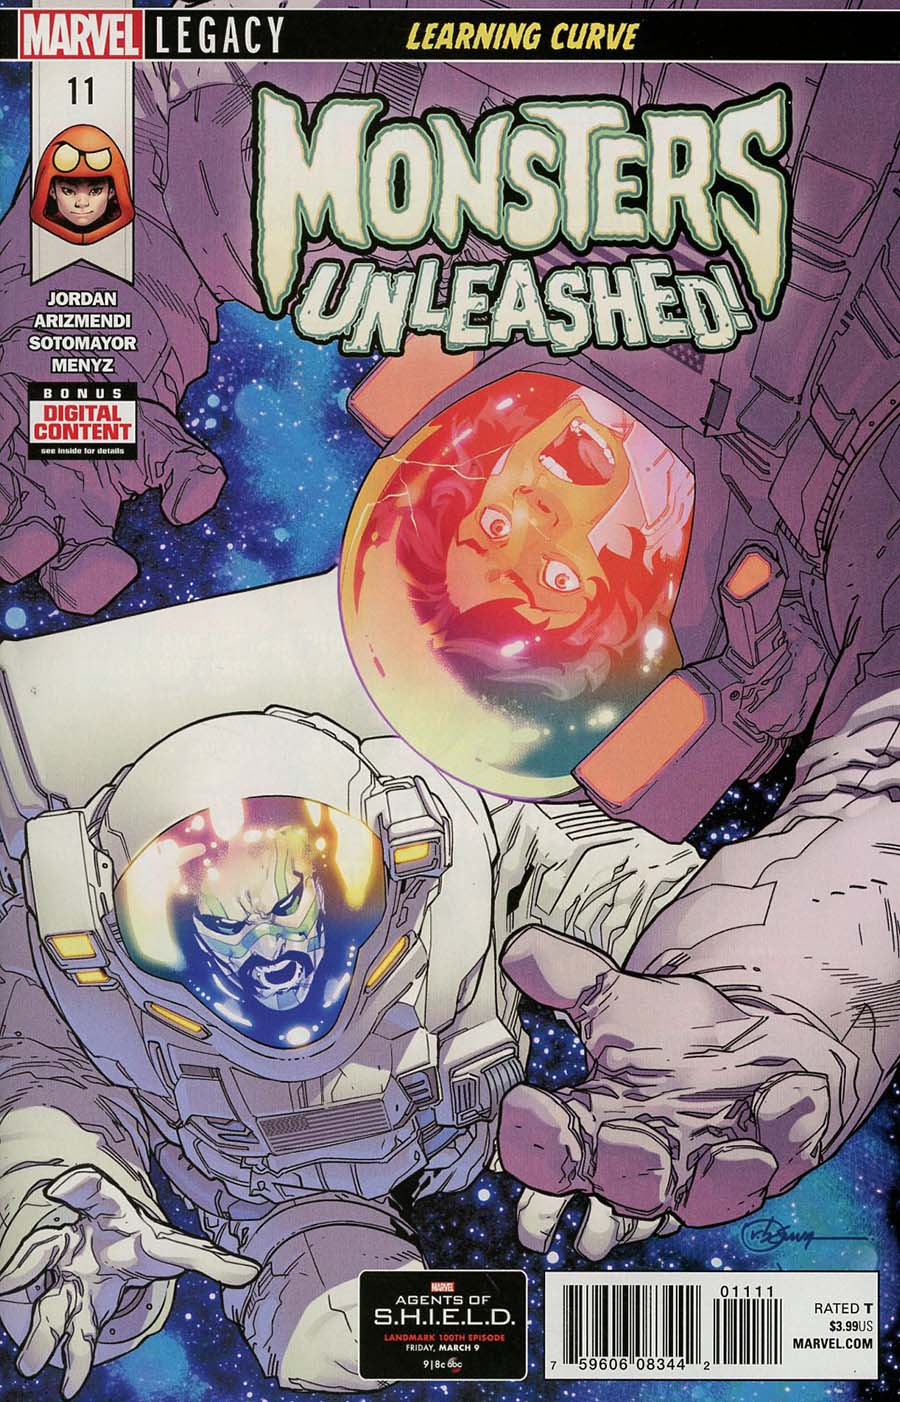 Monsters Unleashed Vol 2 #11 (Marvel Legacy Tie-In)